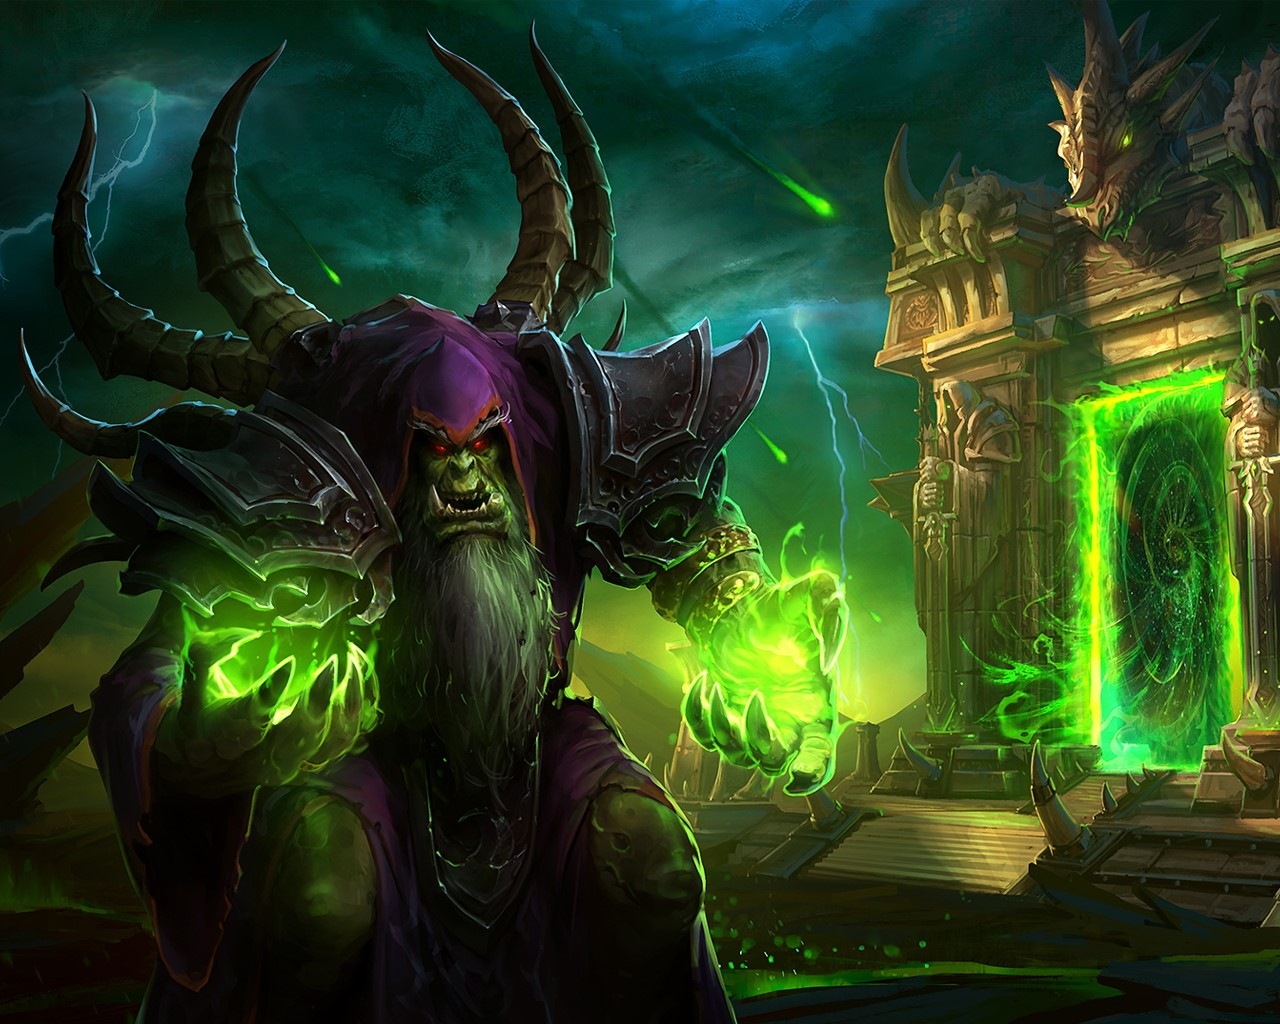 world of warcraft original release date